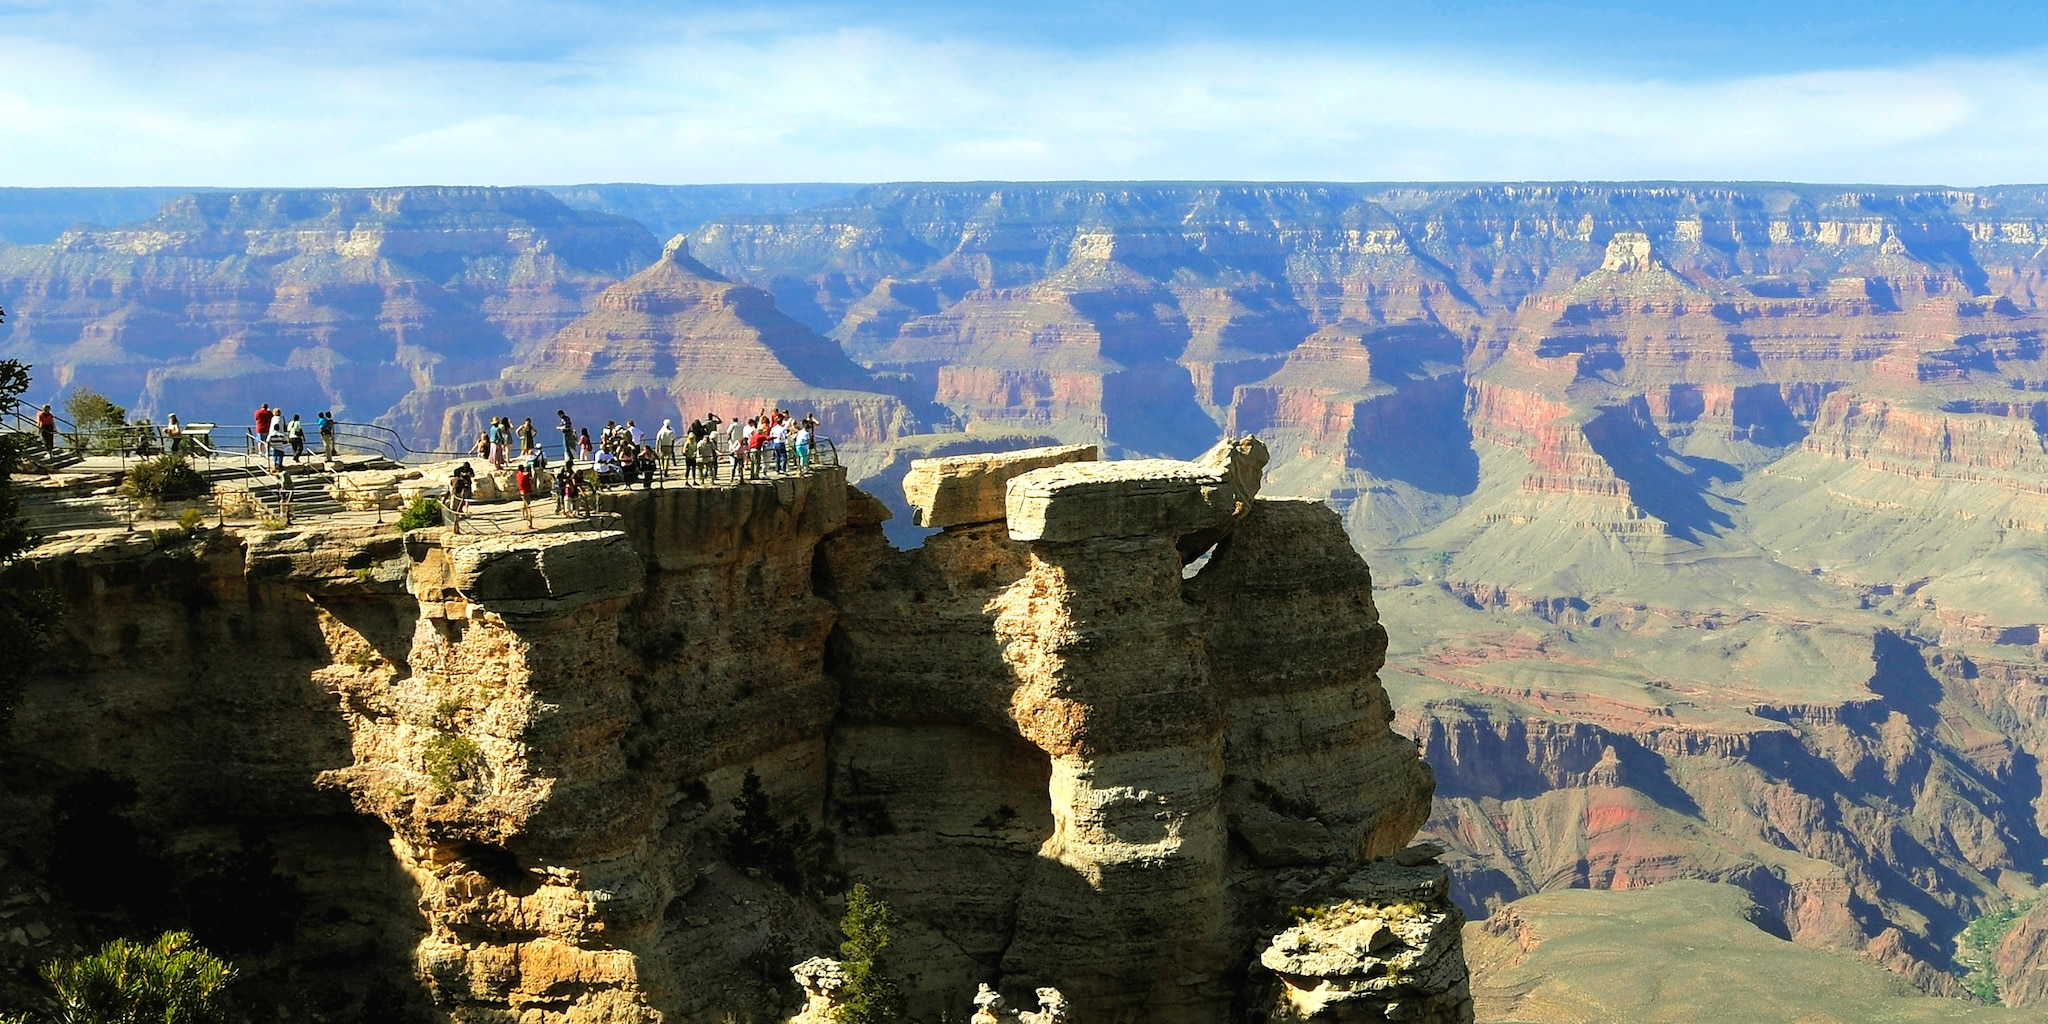 Tourists take in the views high above the walls of the Grand Canyon's South Rim